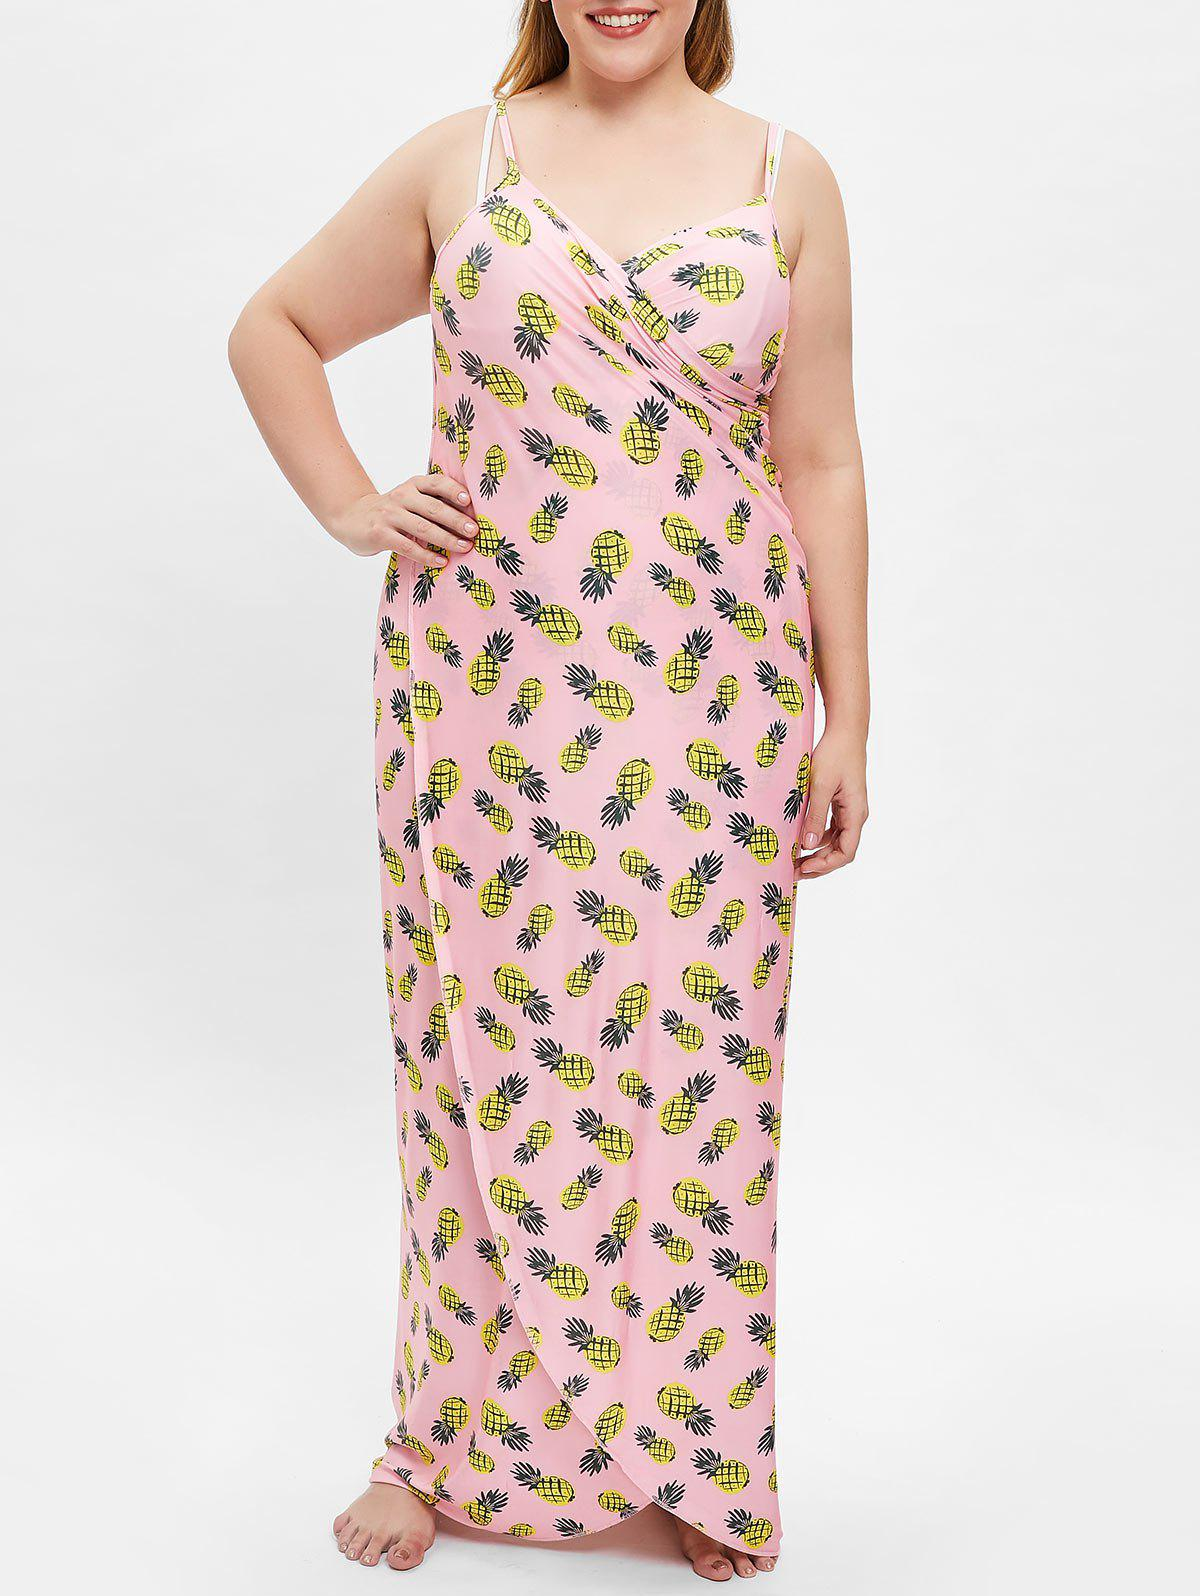 Beach Plus Size Pineapple Print Cover Up Dress - ROSE L